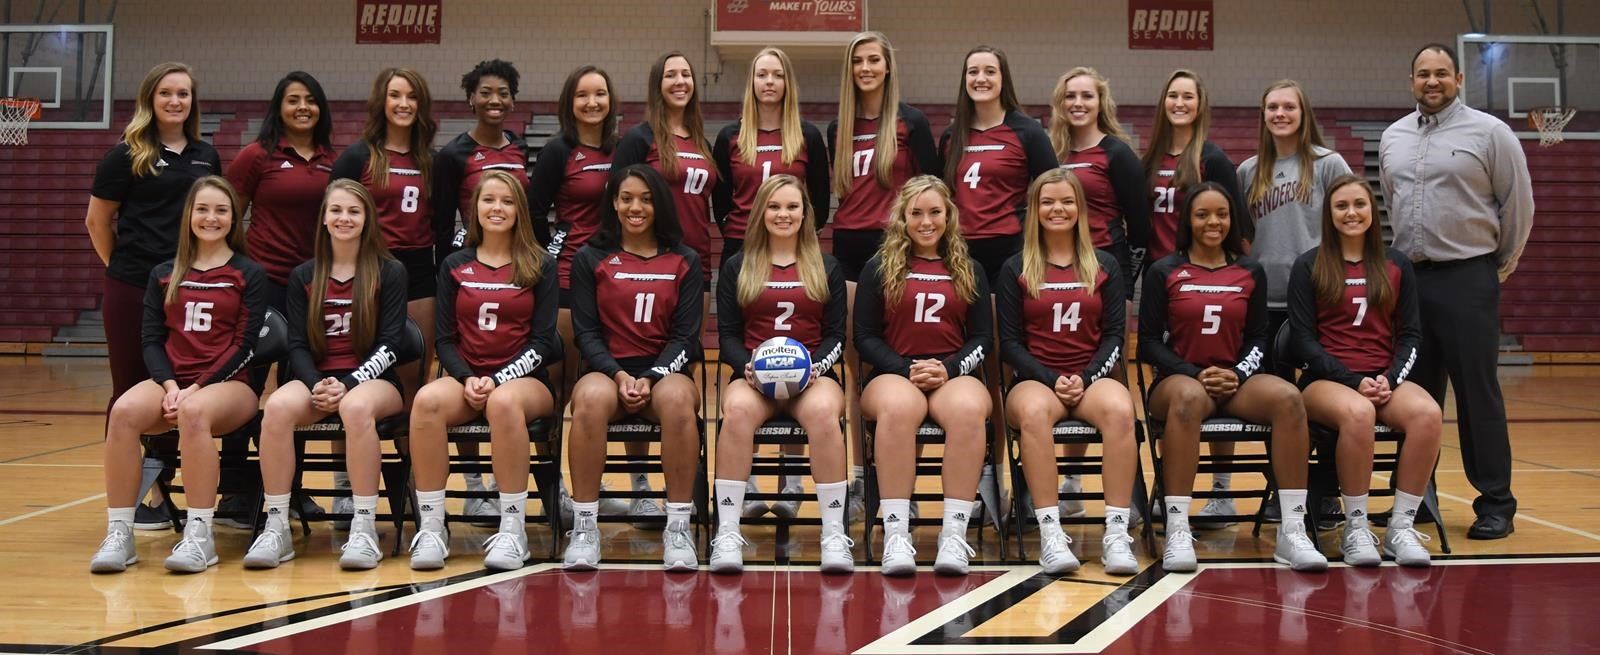 2018 Women S Volleyball Roster Henderson State University Athletics